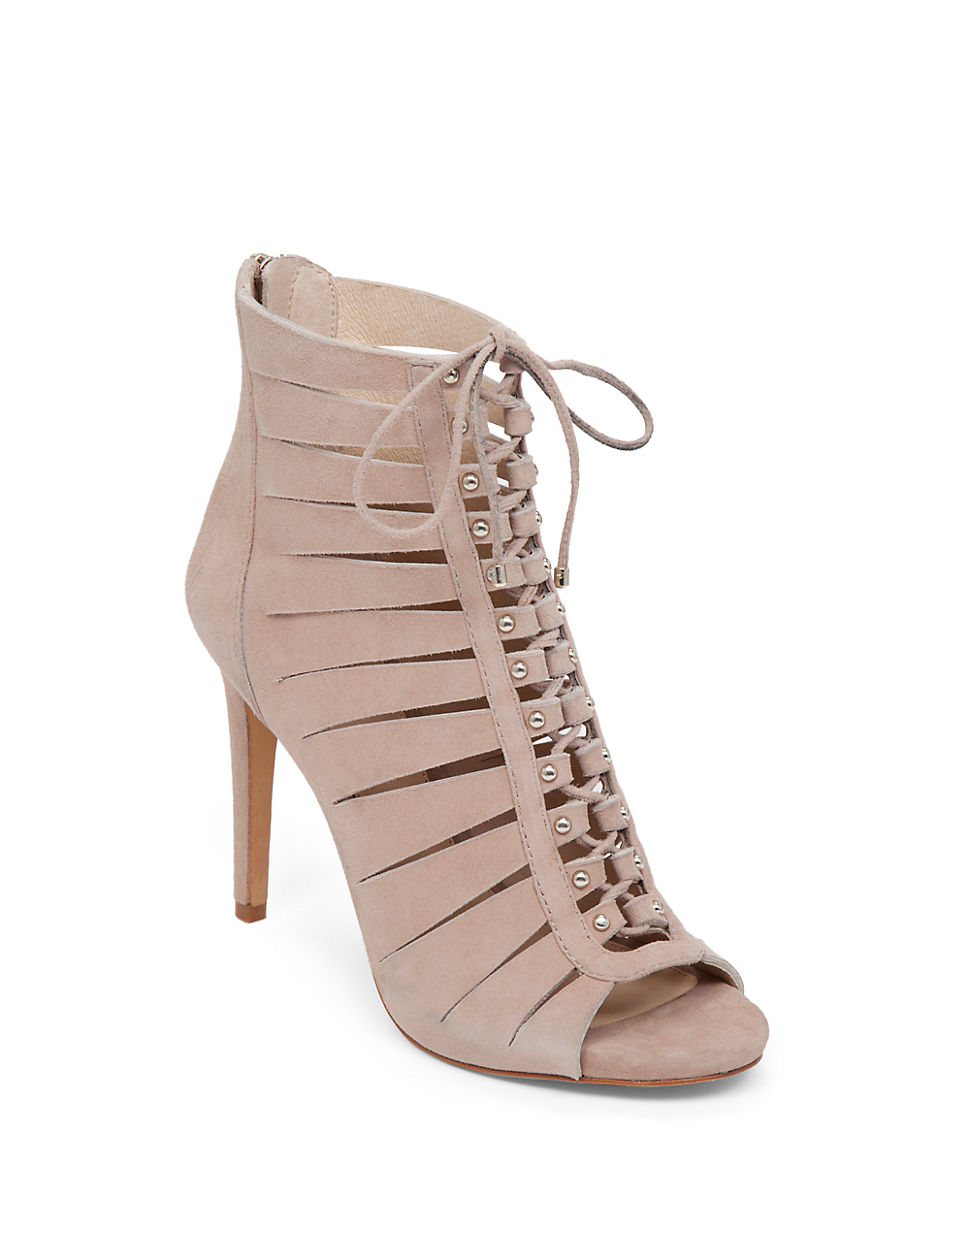 a3f366c570e8 Lyst - Vince Camuto Fionna Lace-up Suede Sandals in Natural